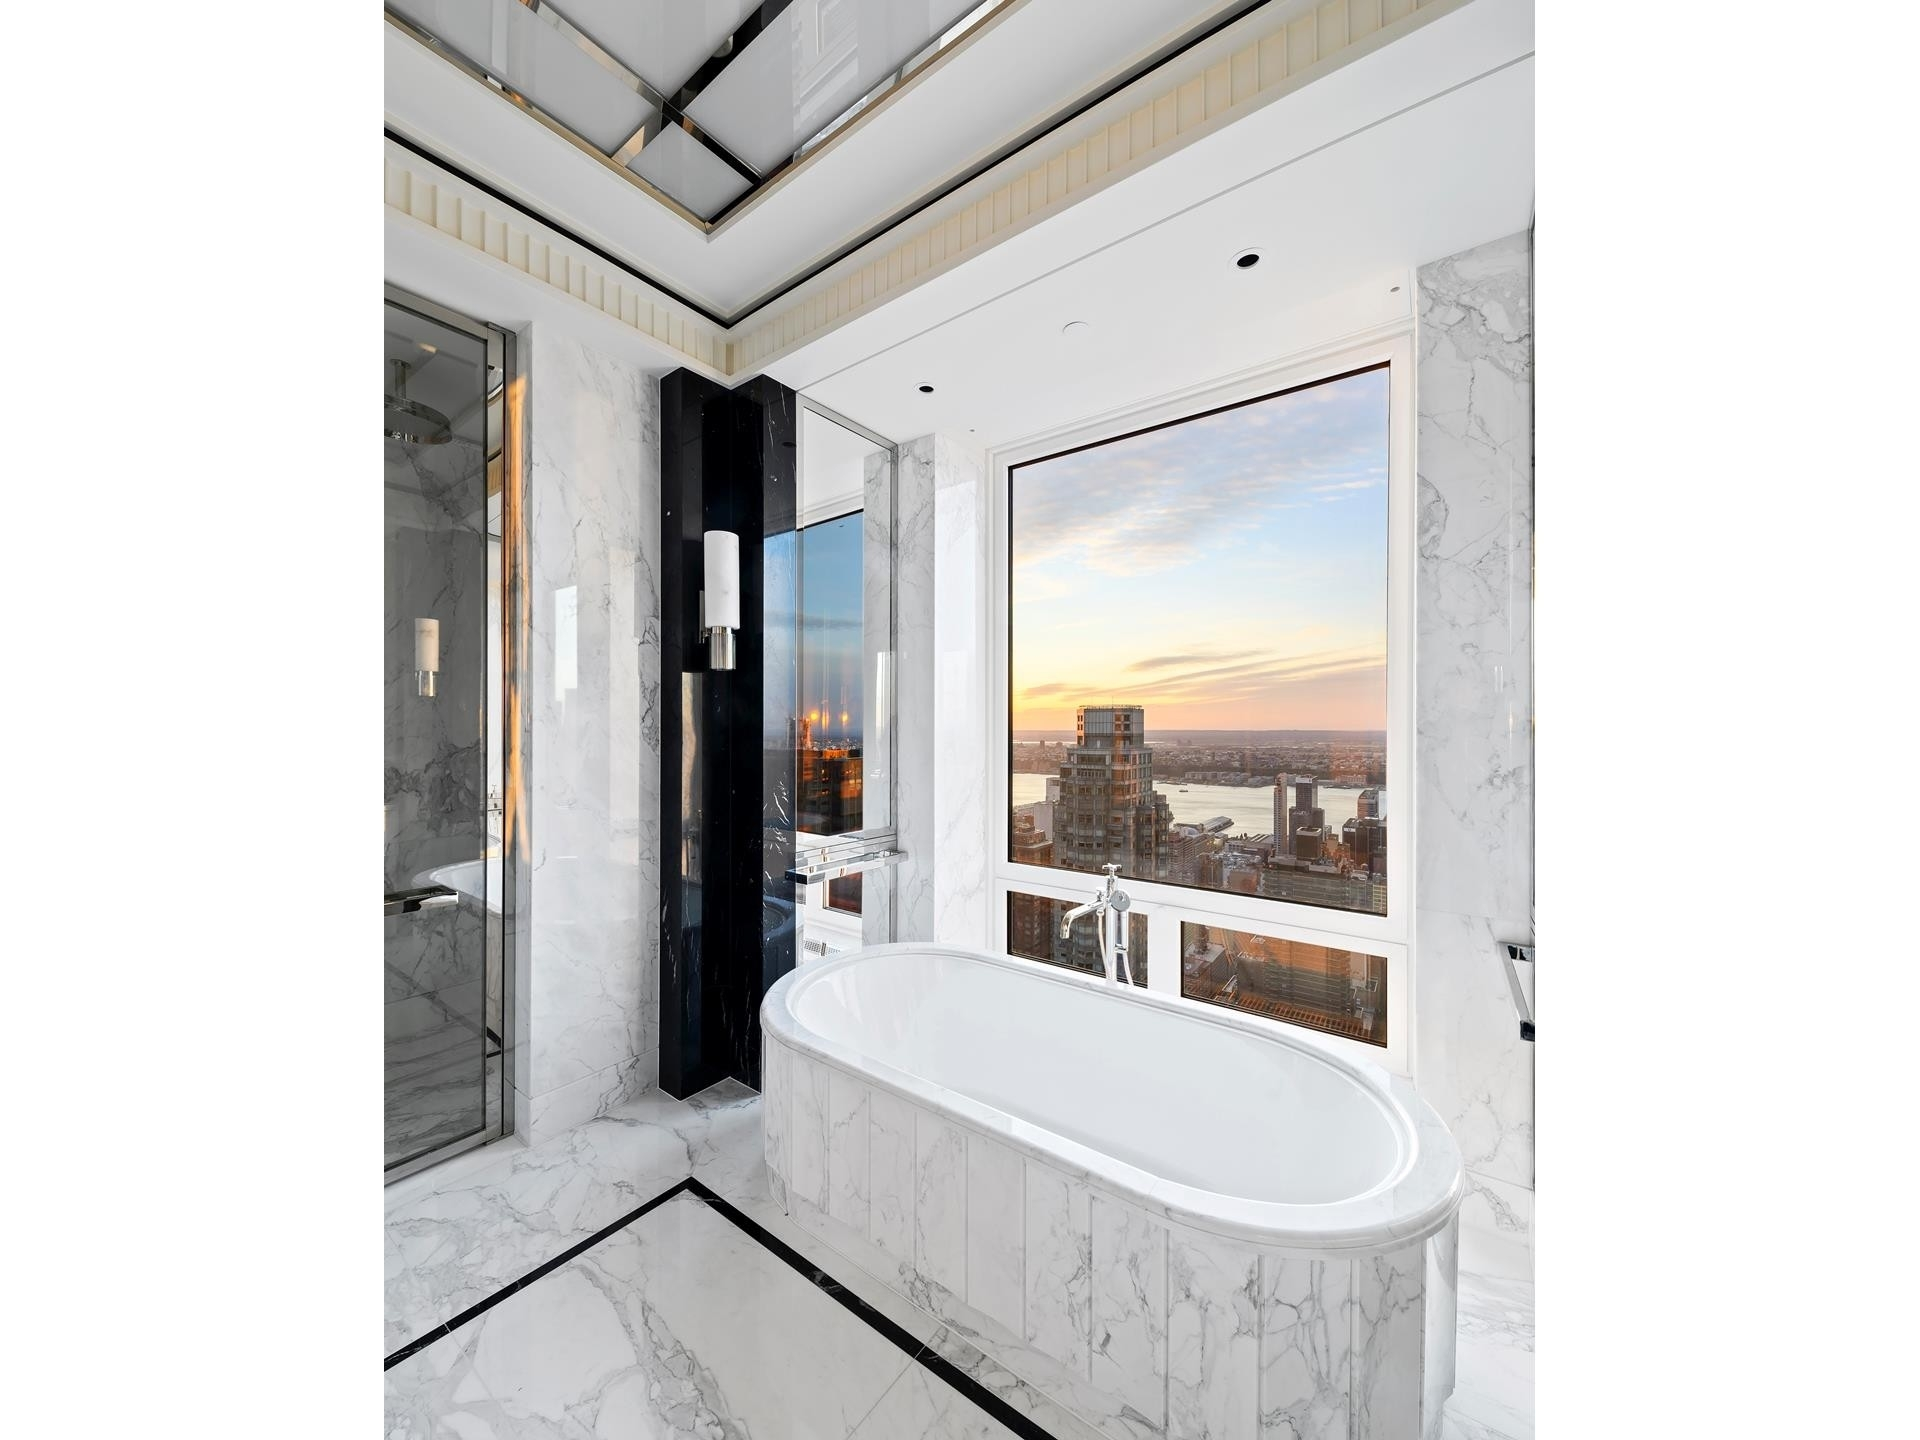 13. Condominiums for Sale at 220 CPS, 220 CENTRAL PARK S, 54/55A Central Park South, New York, NY 10019